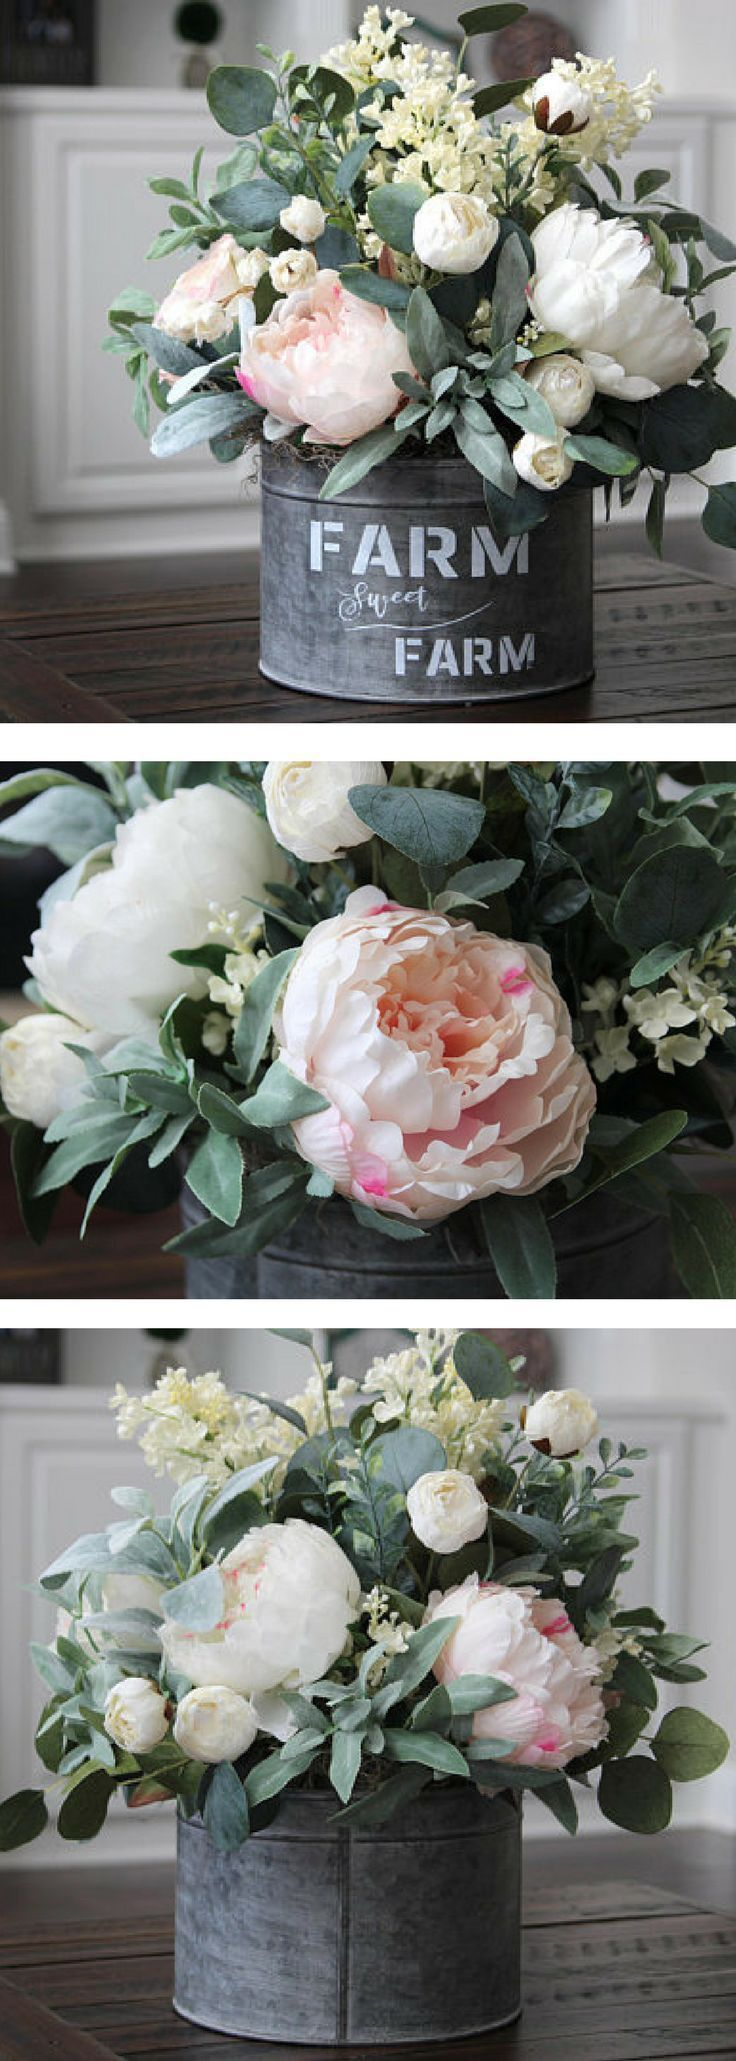 Diy Crafts Ideas : Farmhouse Décor ~Cottage Décor ~Spring Centerpiece ~Real Touch Pink/White Peon